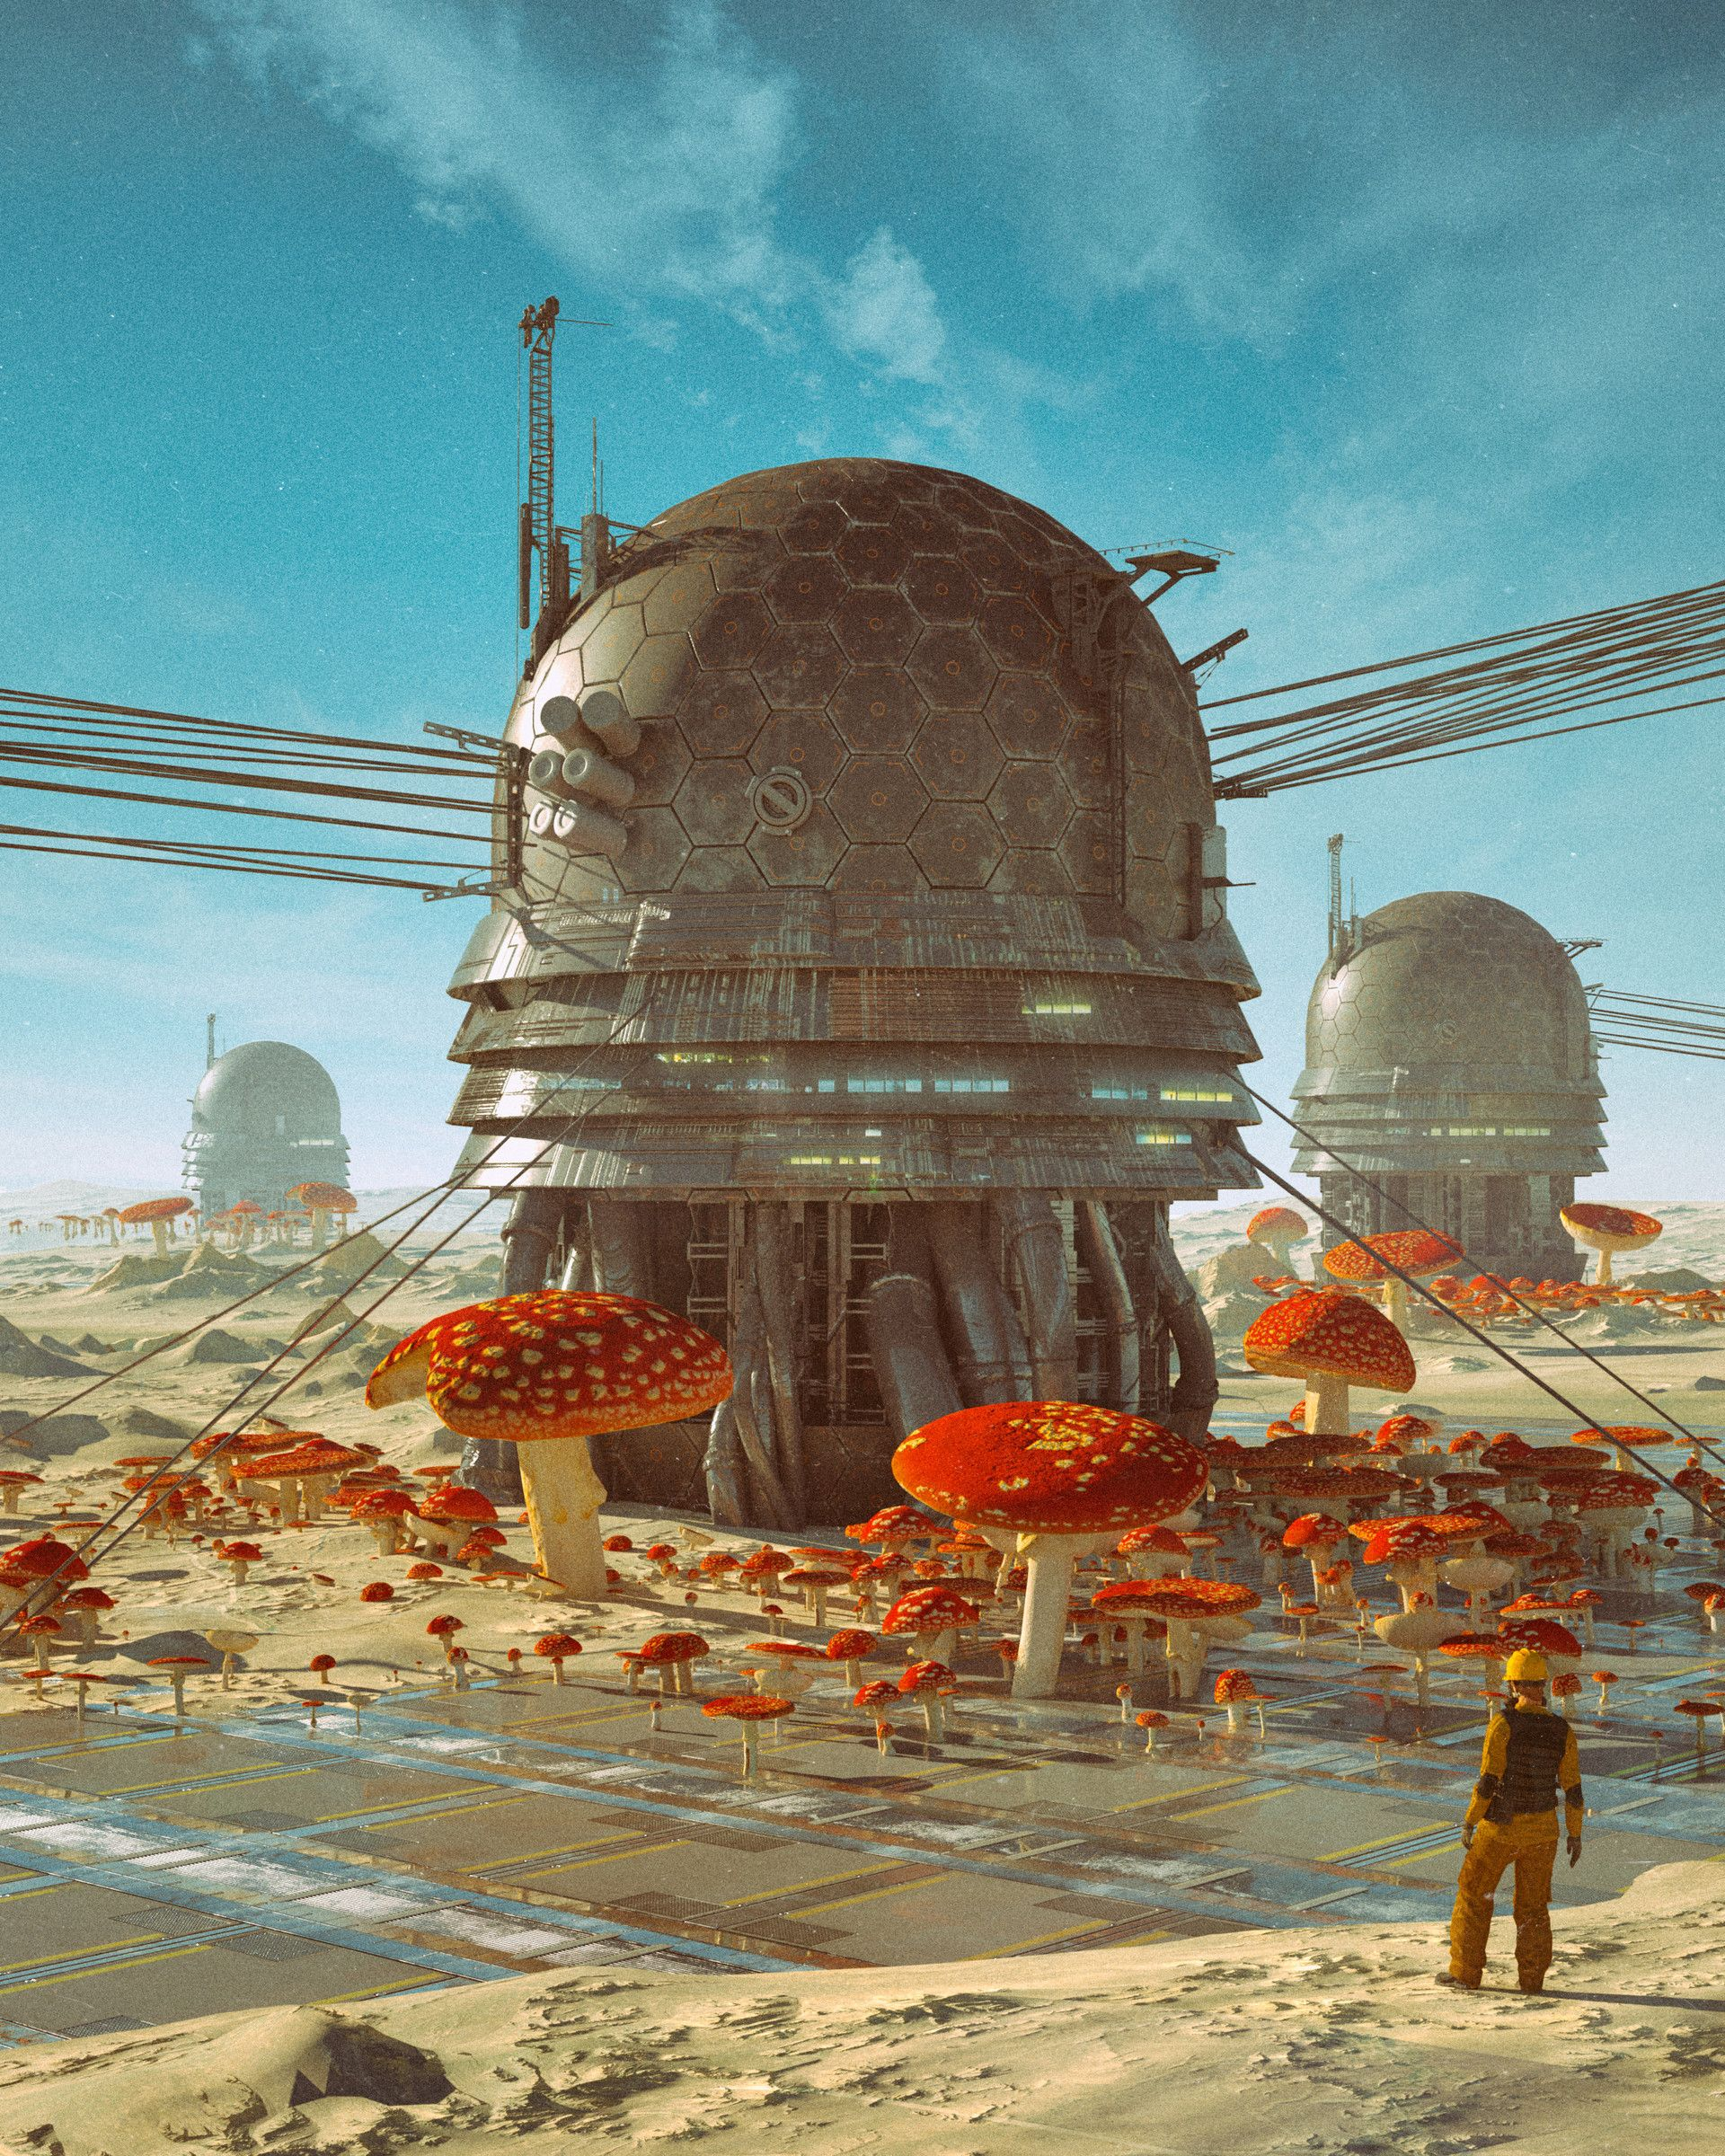 ArtStation - MUSHROOM GENERATOR , beeple   | World Building